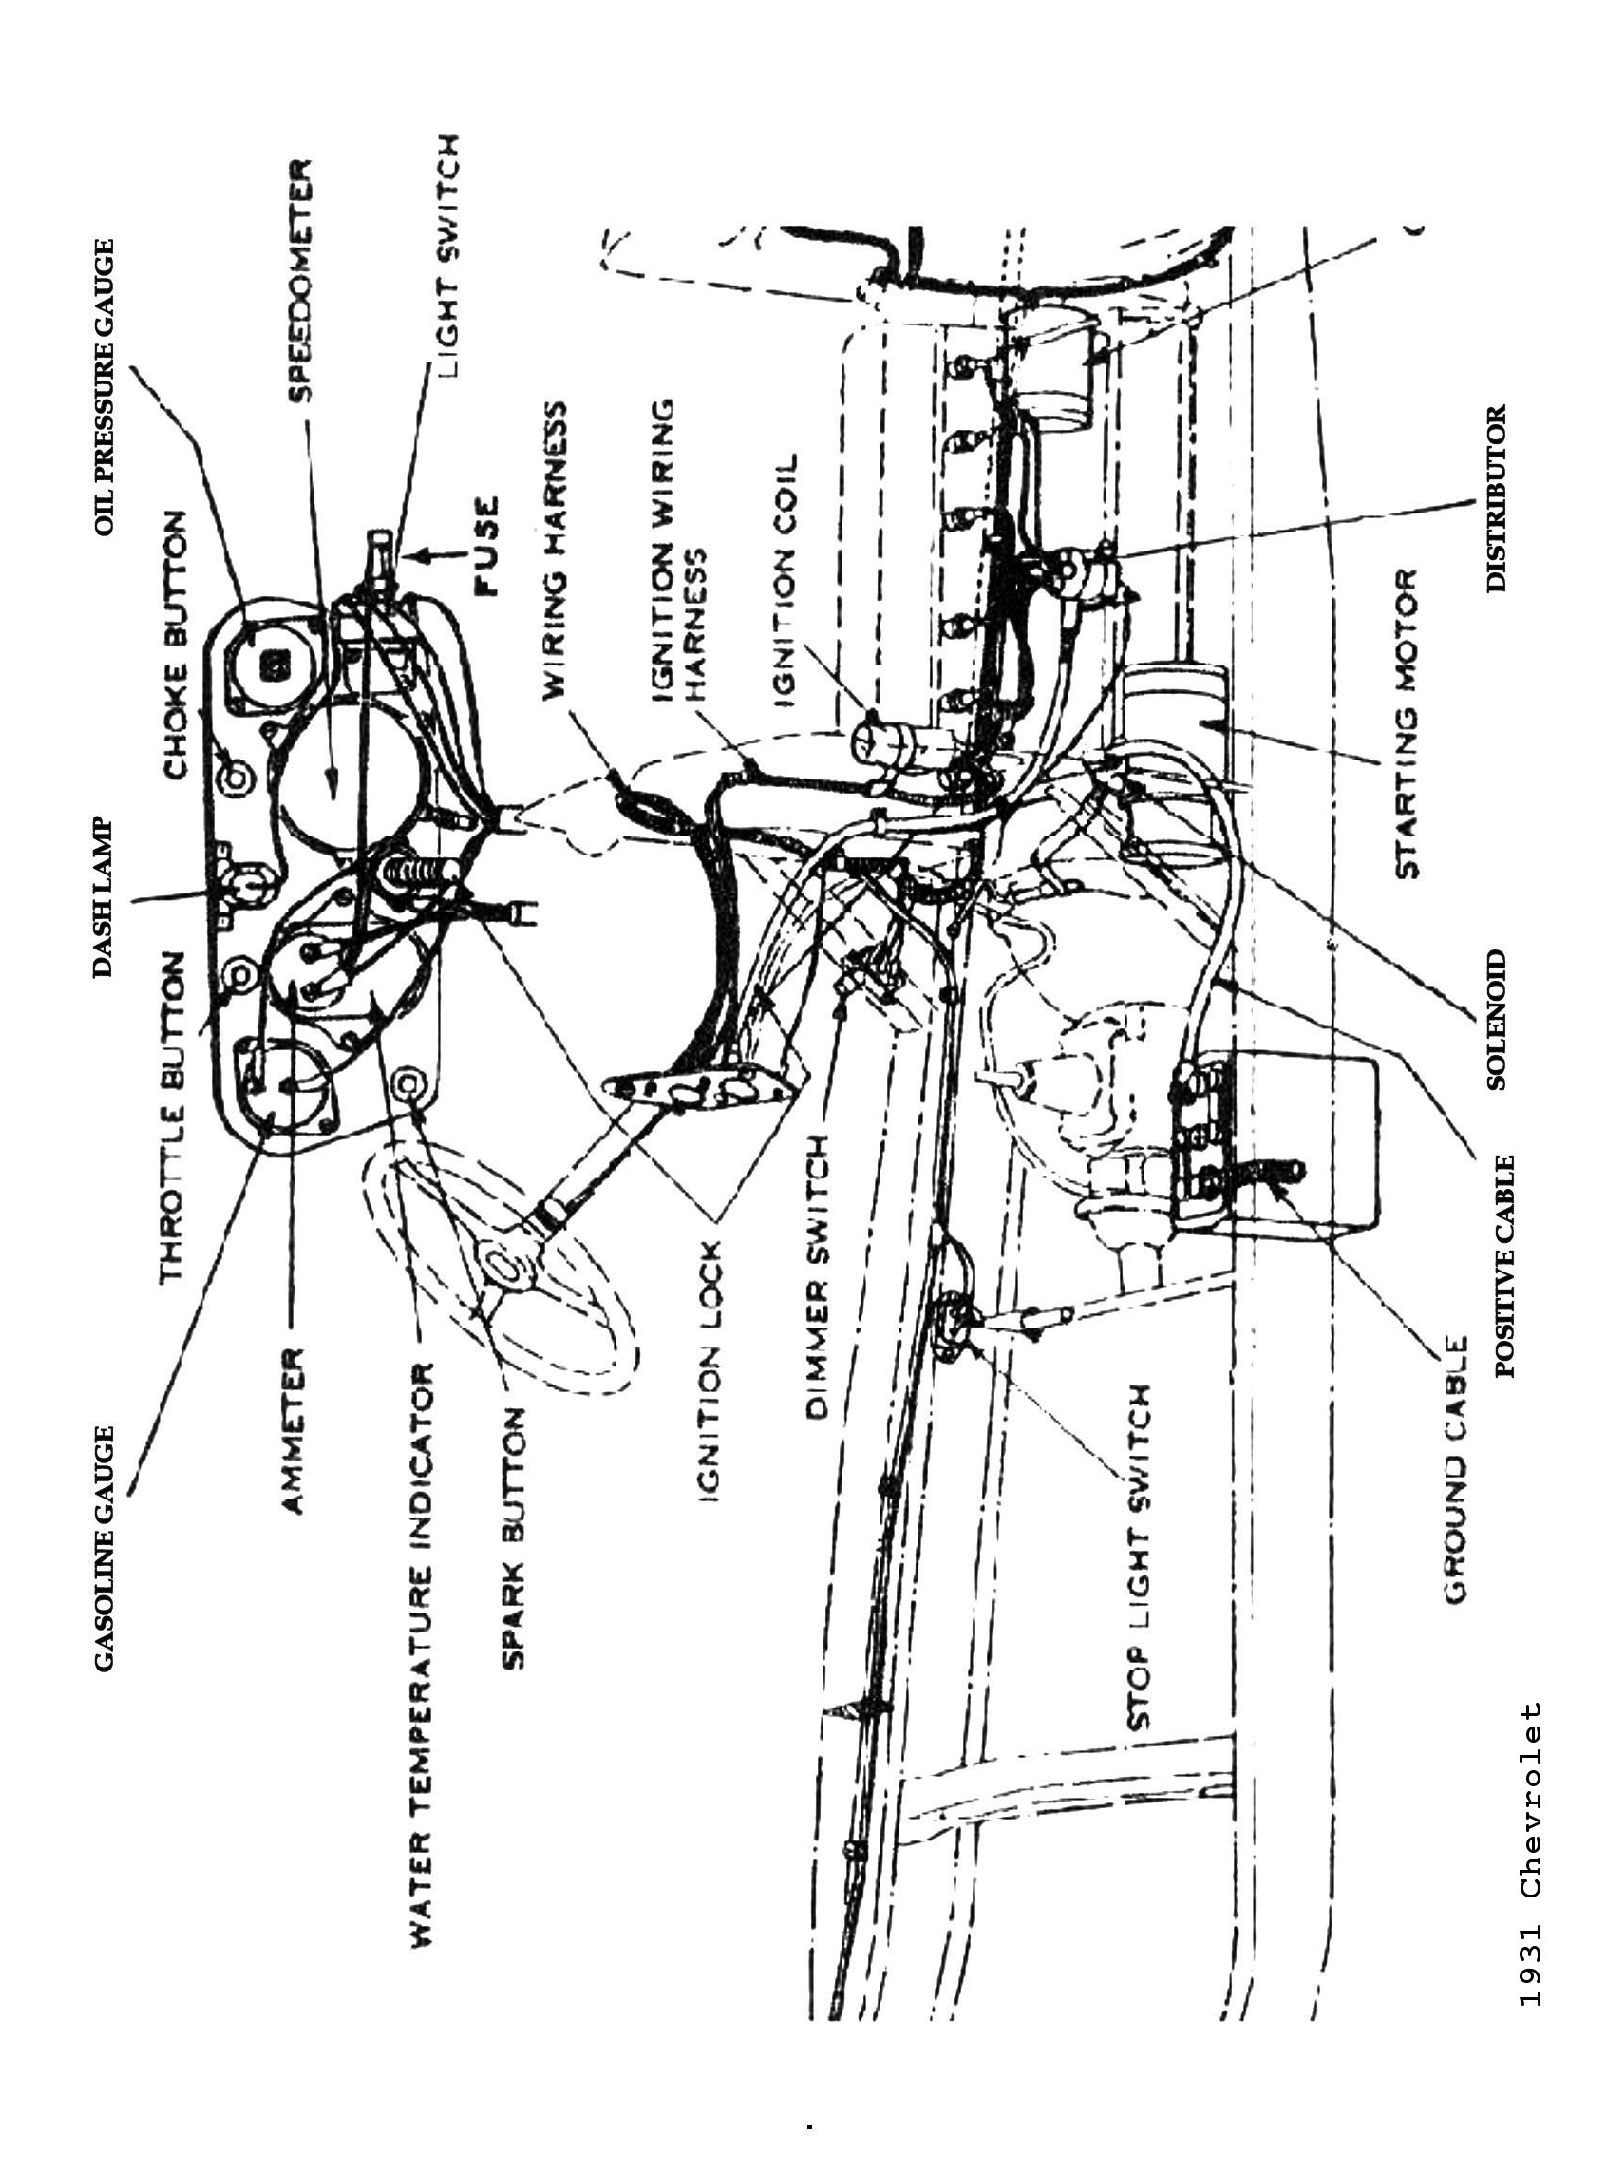 31harness chevy wiring diagrams chevy ignition wiring diagram at n-0.co